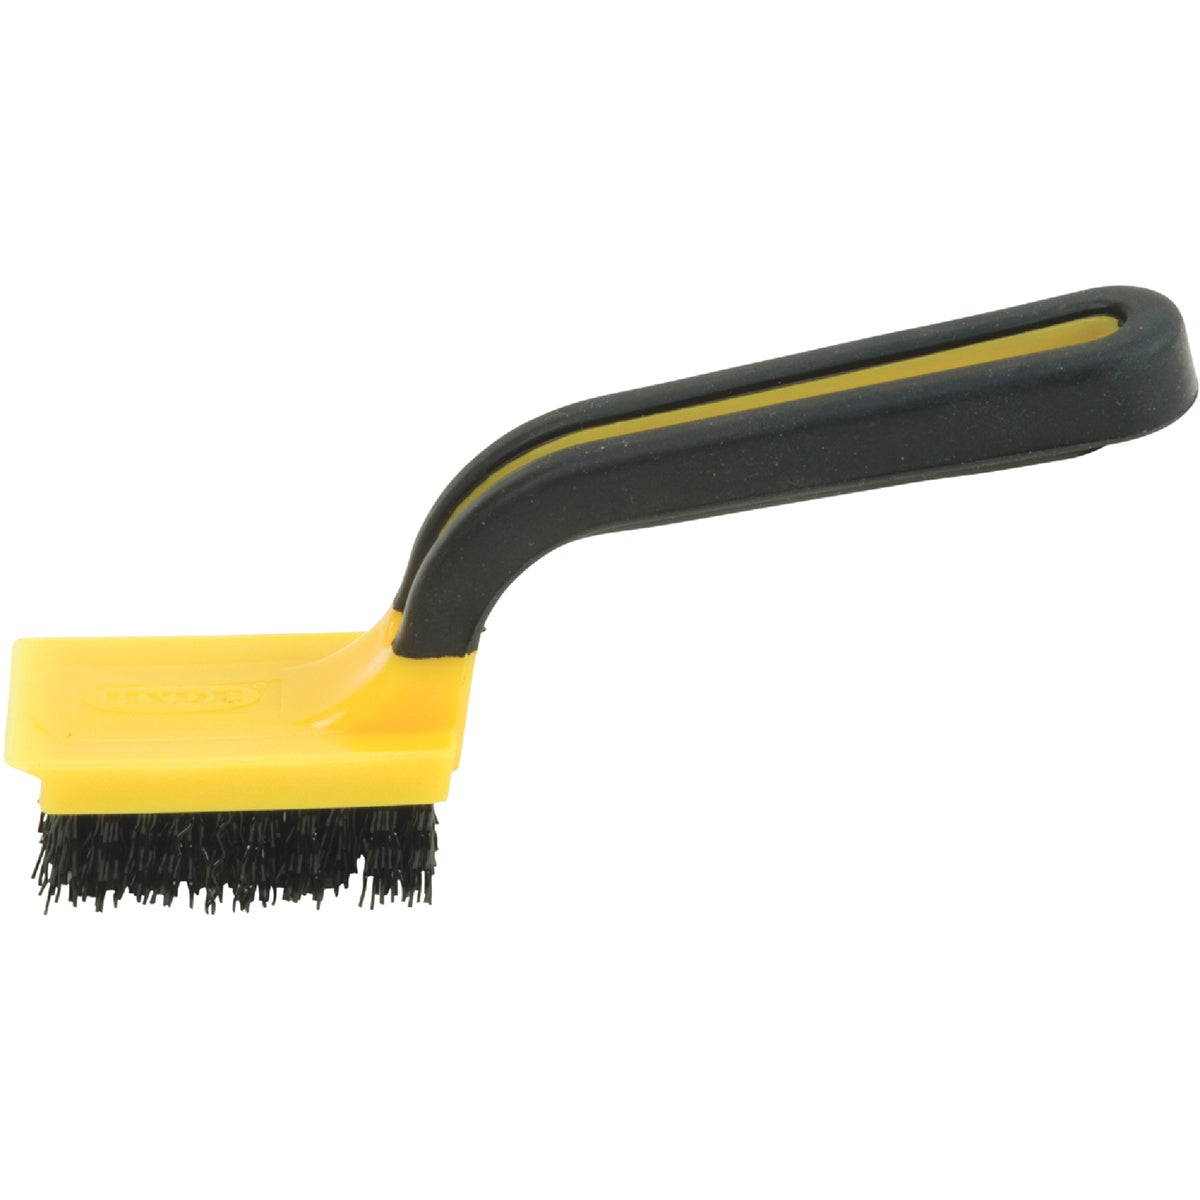 NYLON STRIPPER BRUSH - 46804 by Hyde Mfg Co